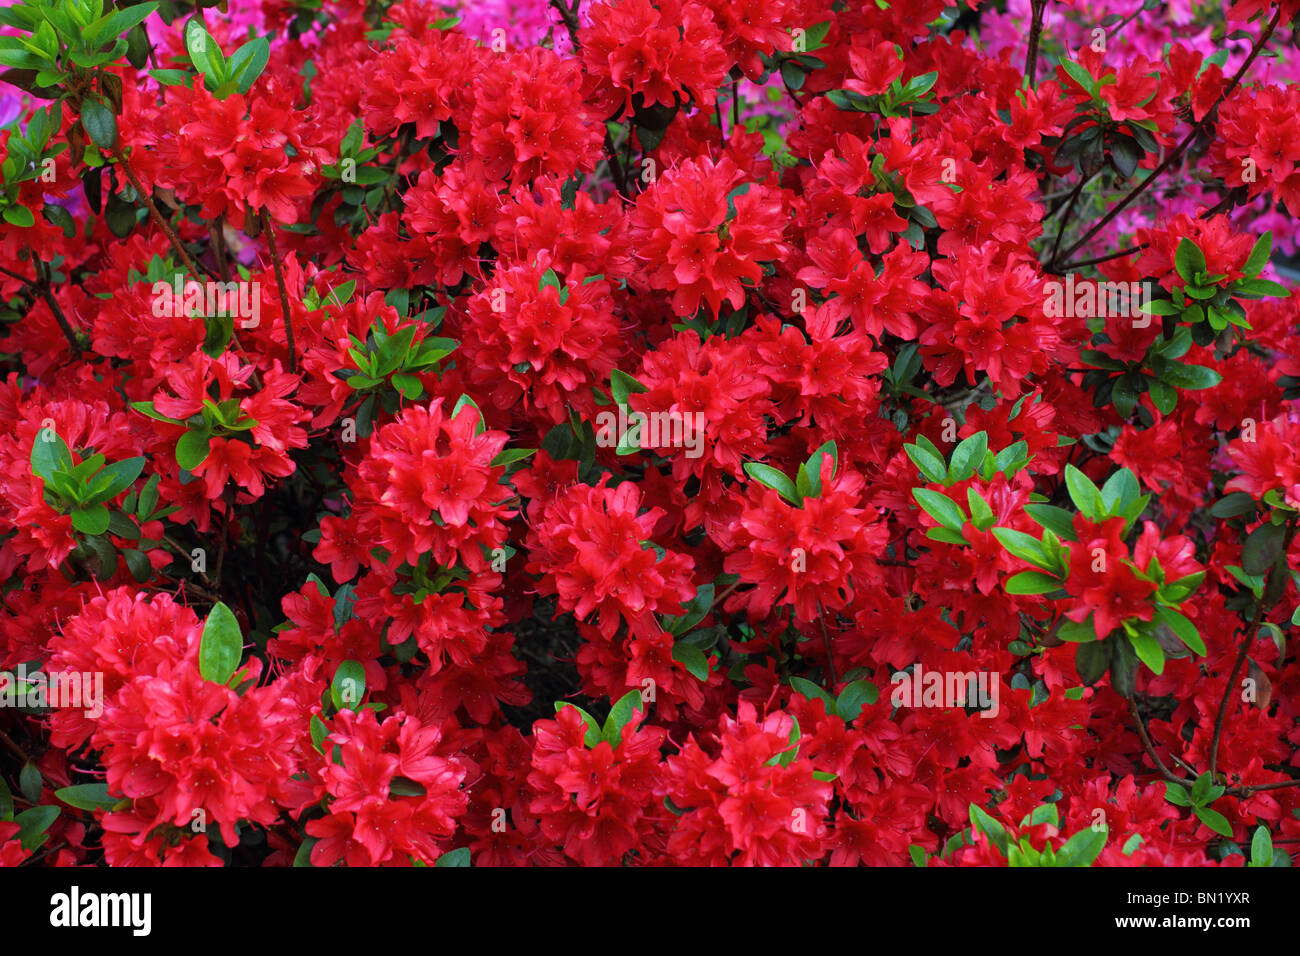 Red rhododendron blossom - Stock Image